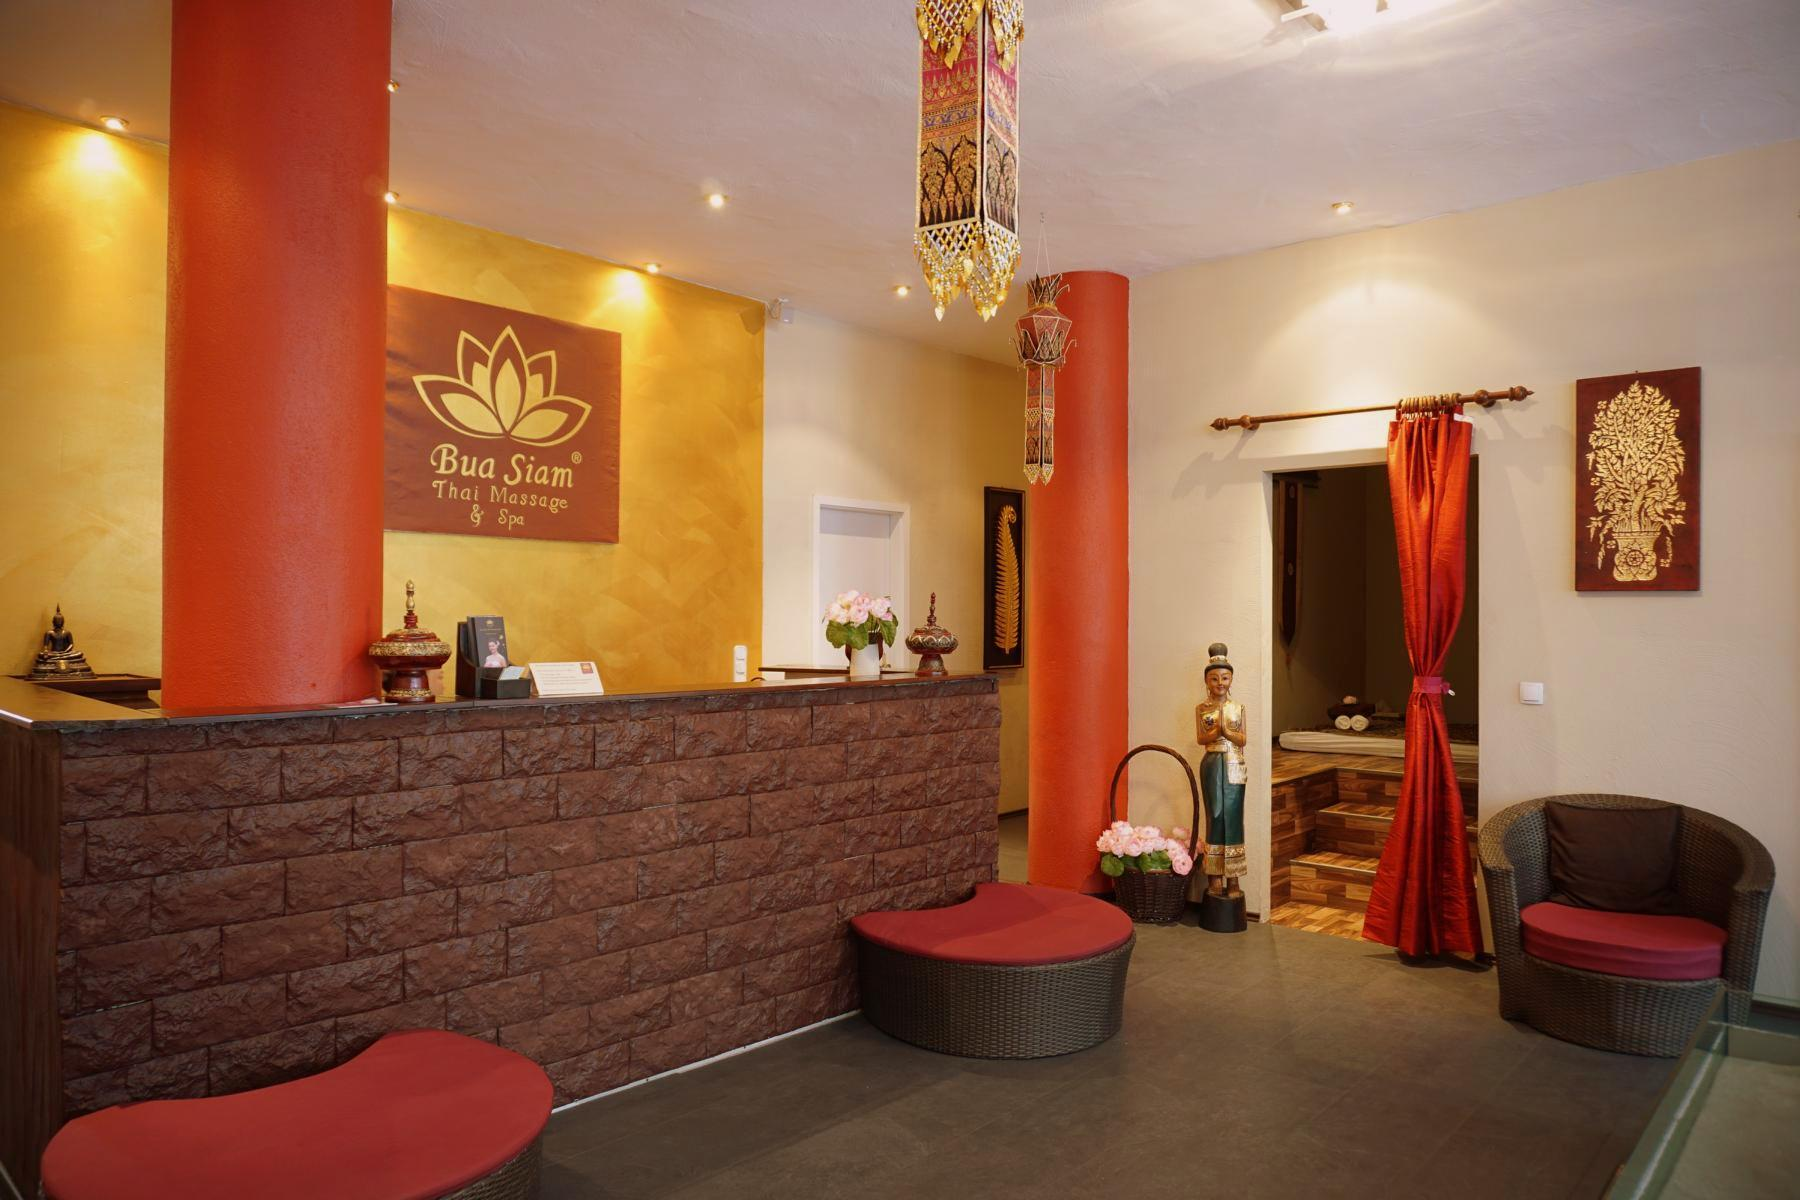 erotisk massage västerås wai thai massage